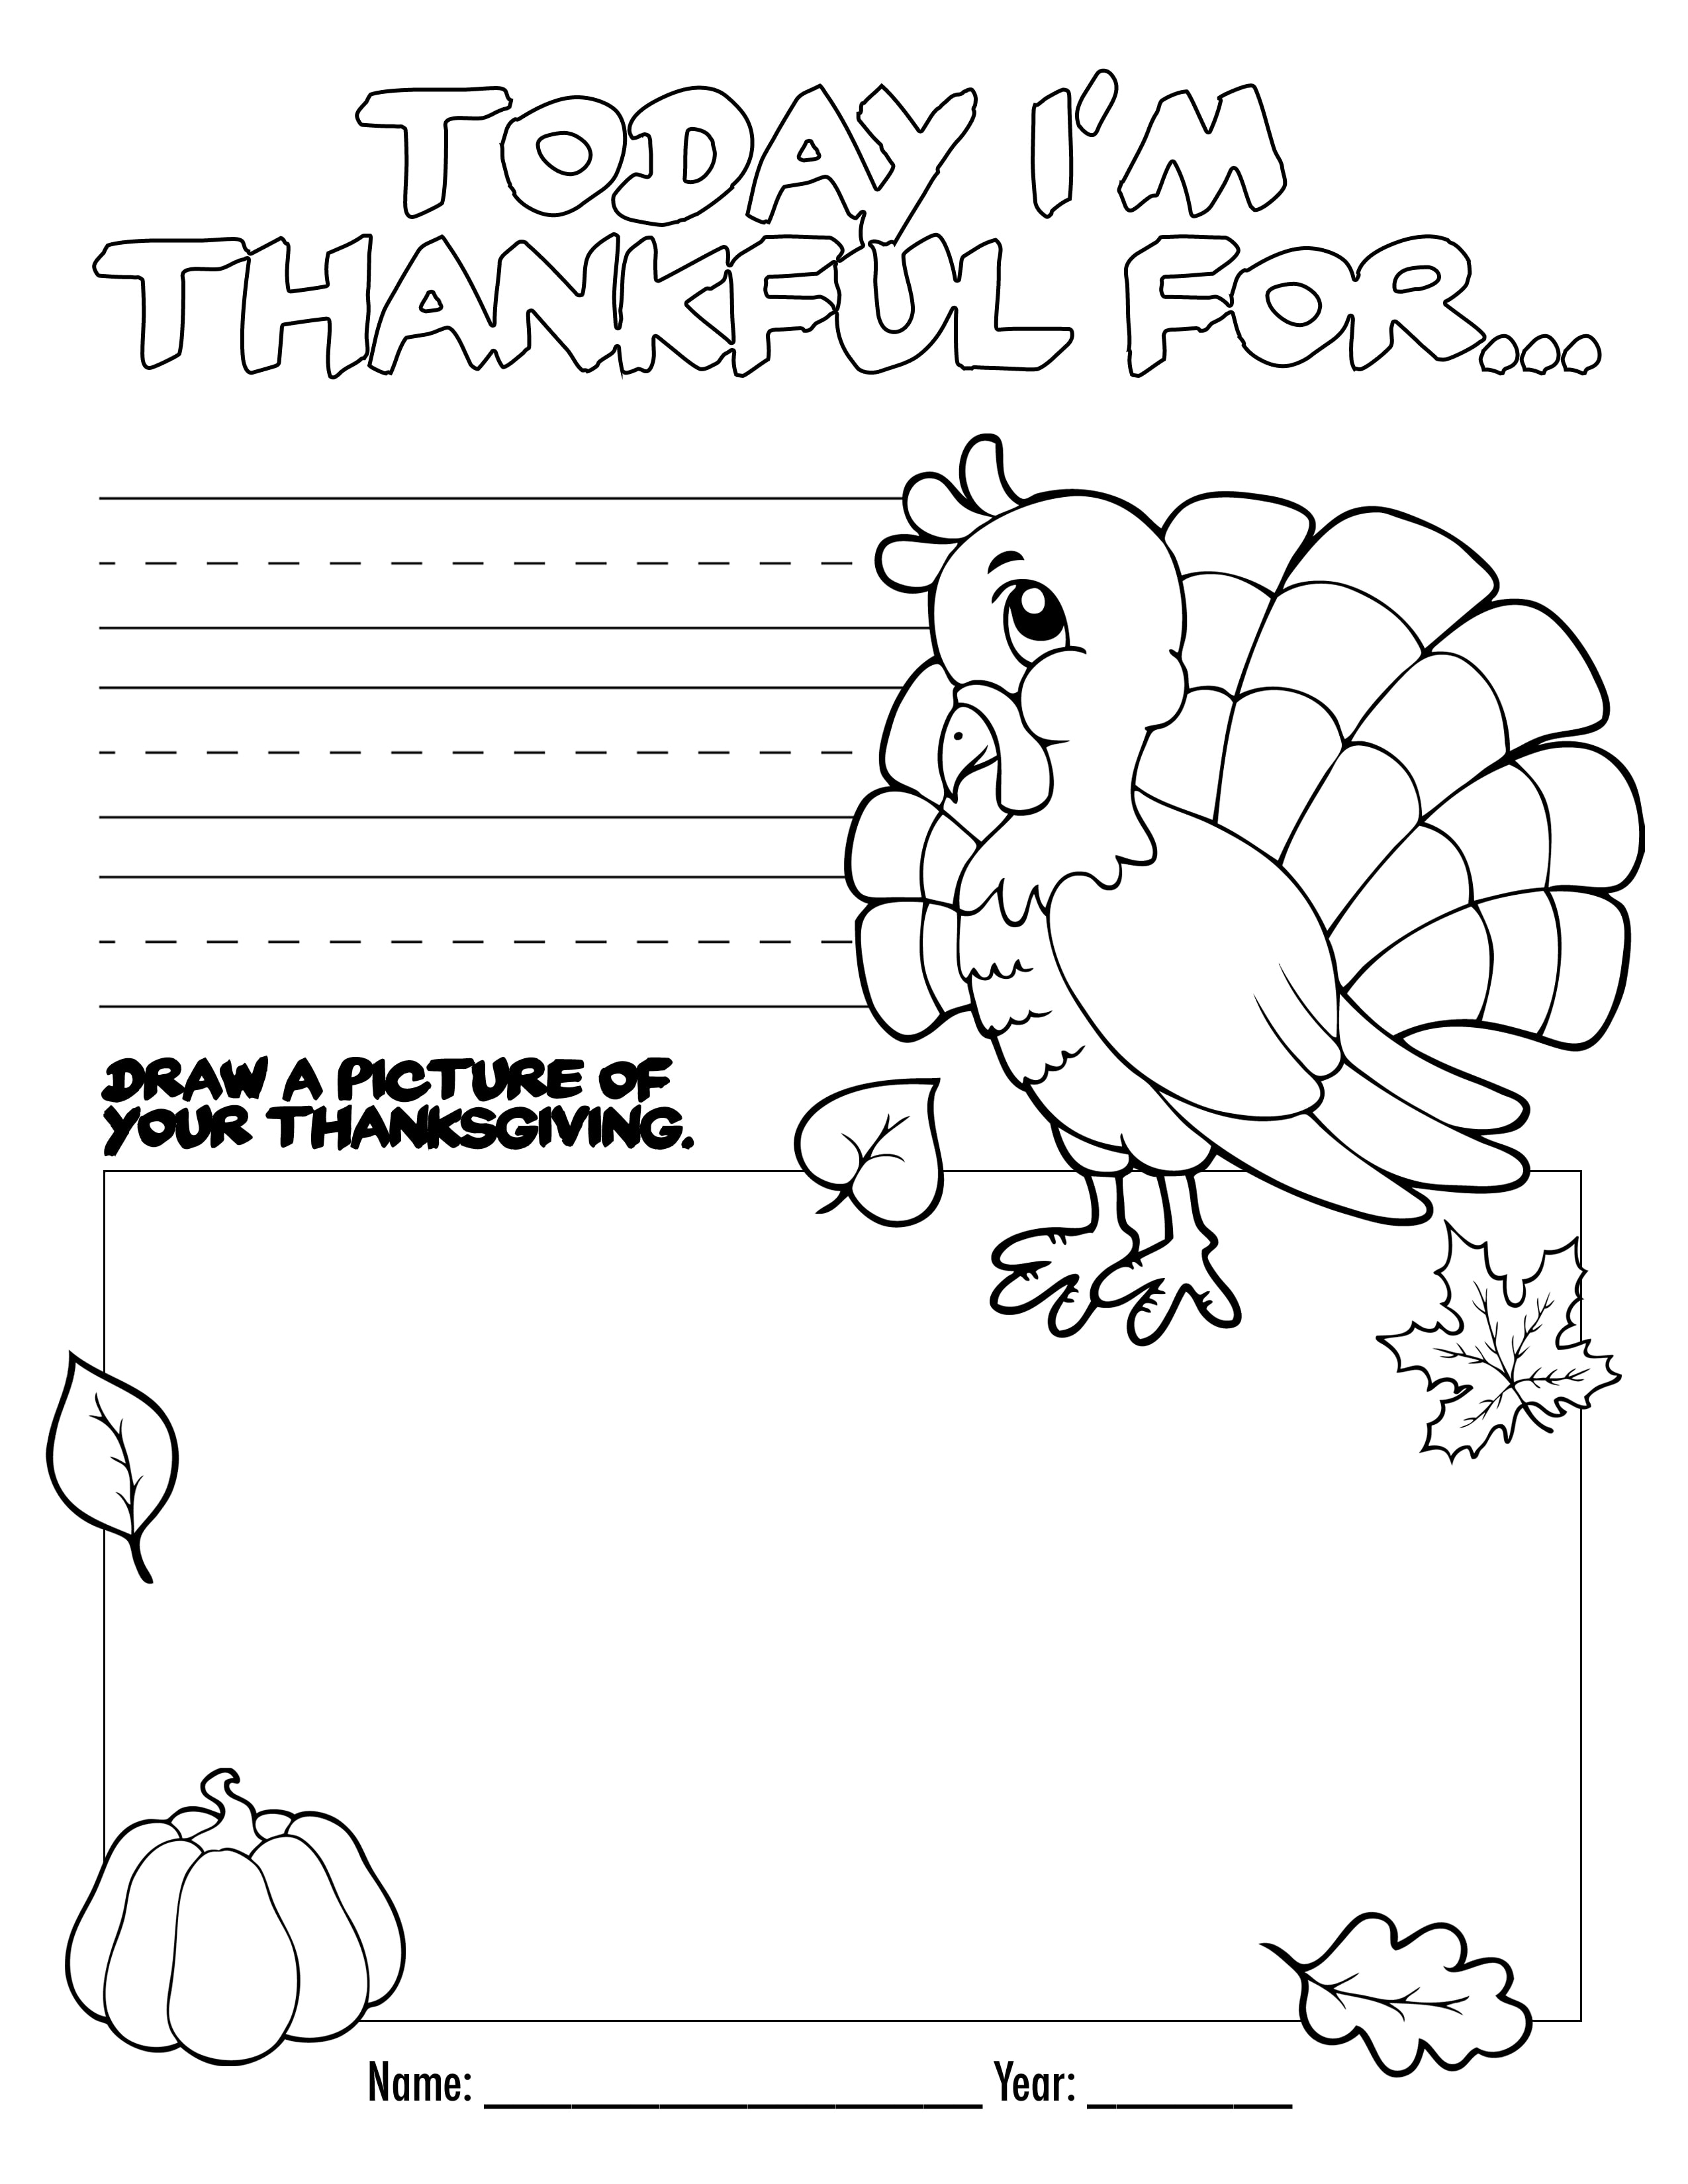 Thanksgiving Color Book Free Printable